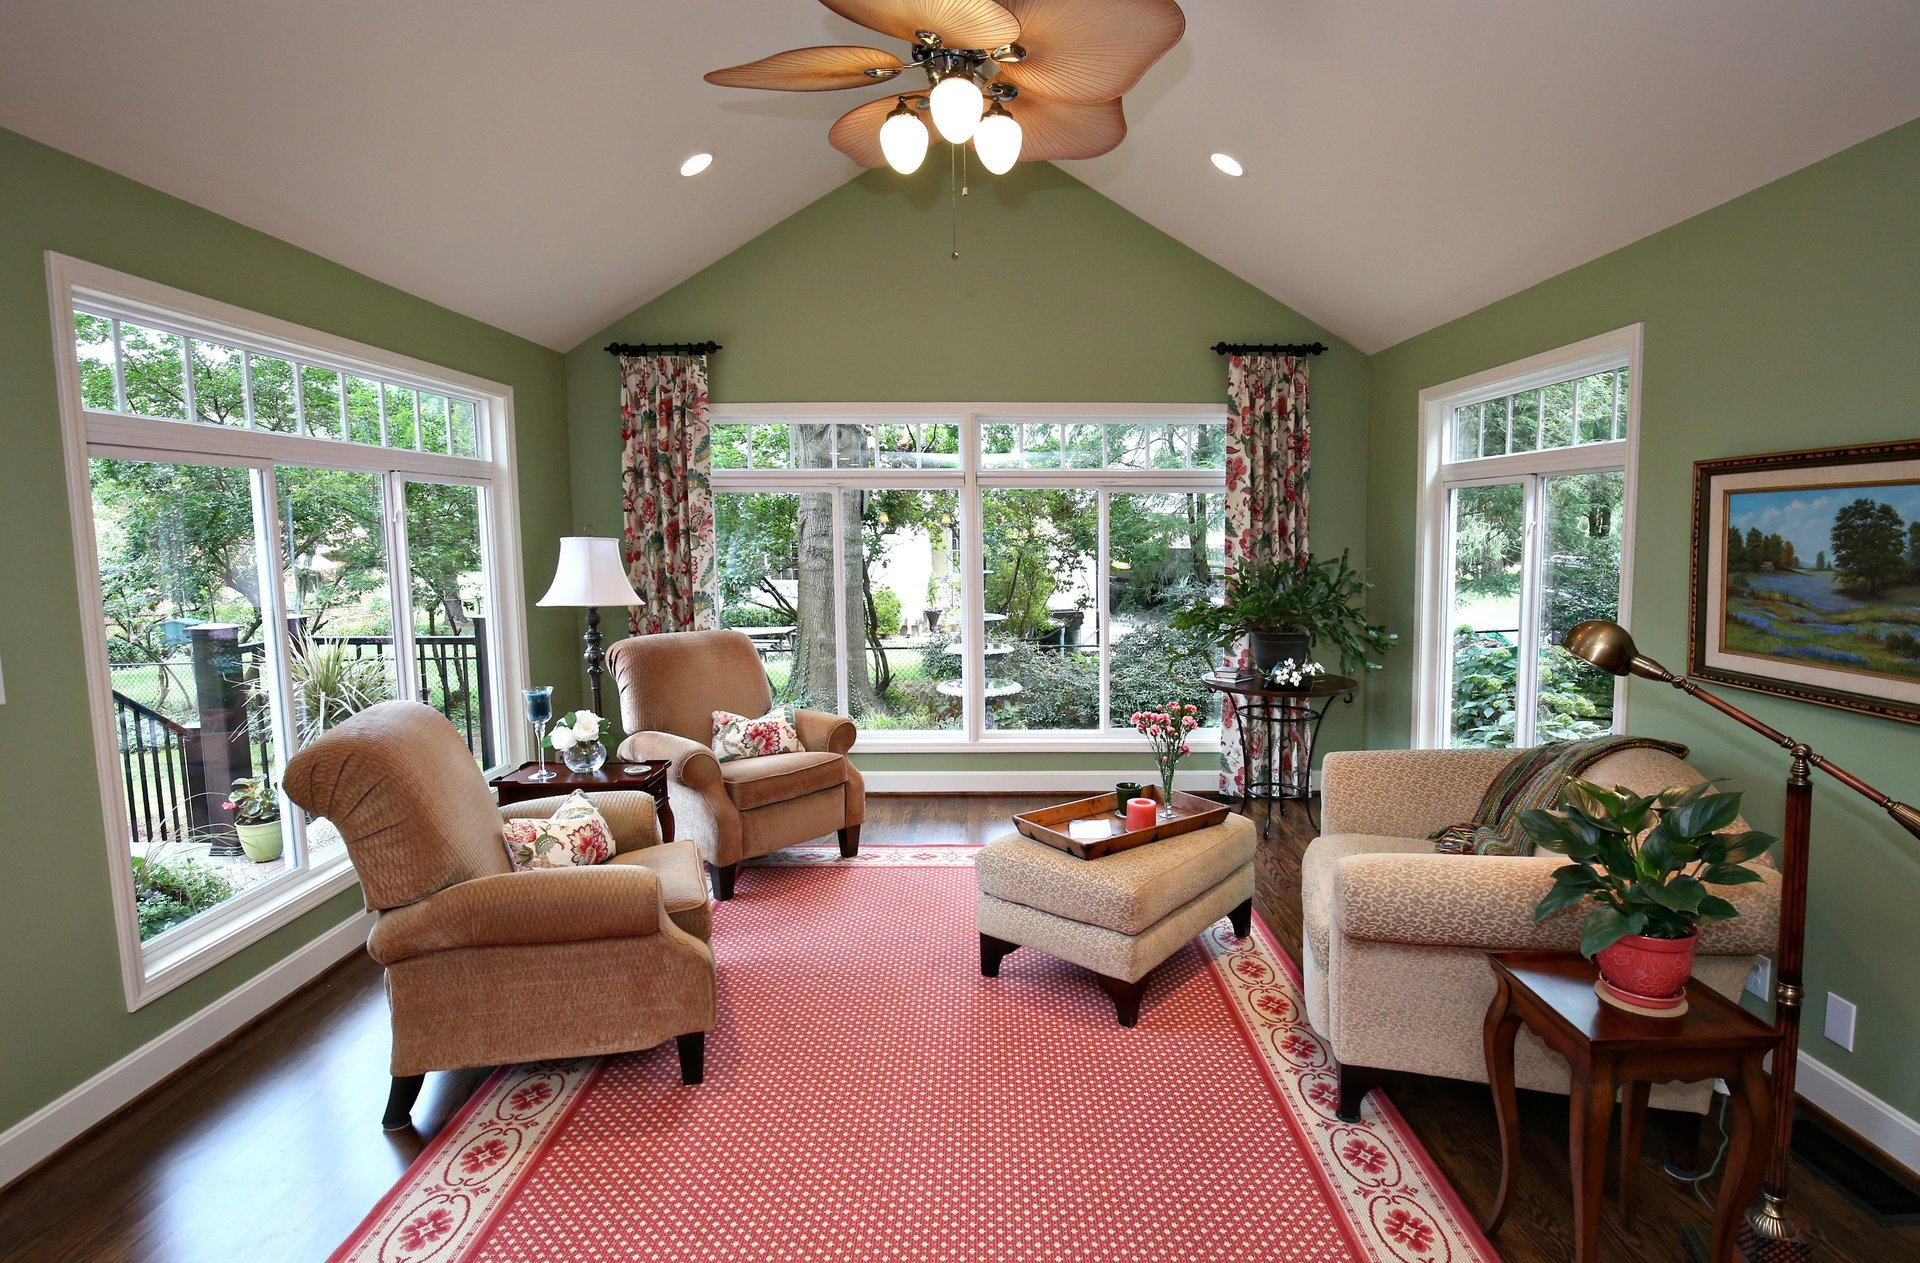 Let the Light in With a Sunroom